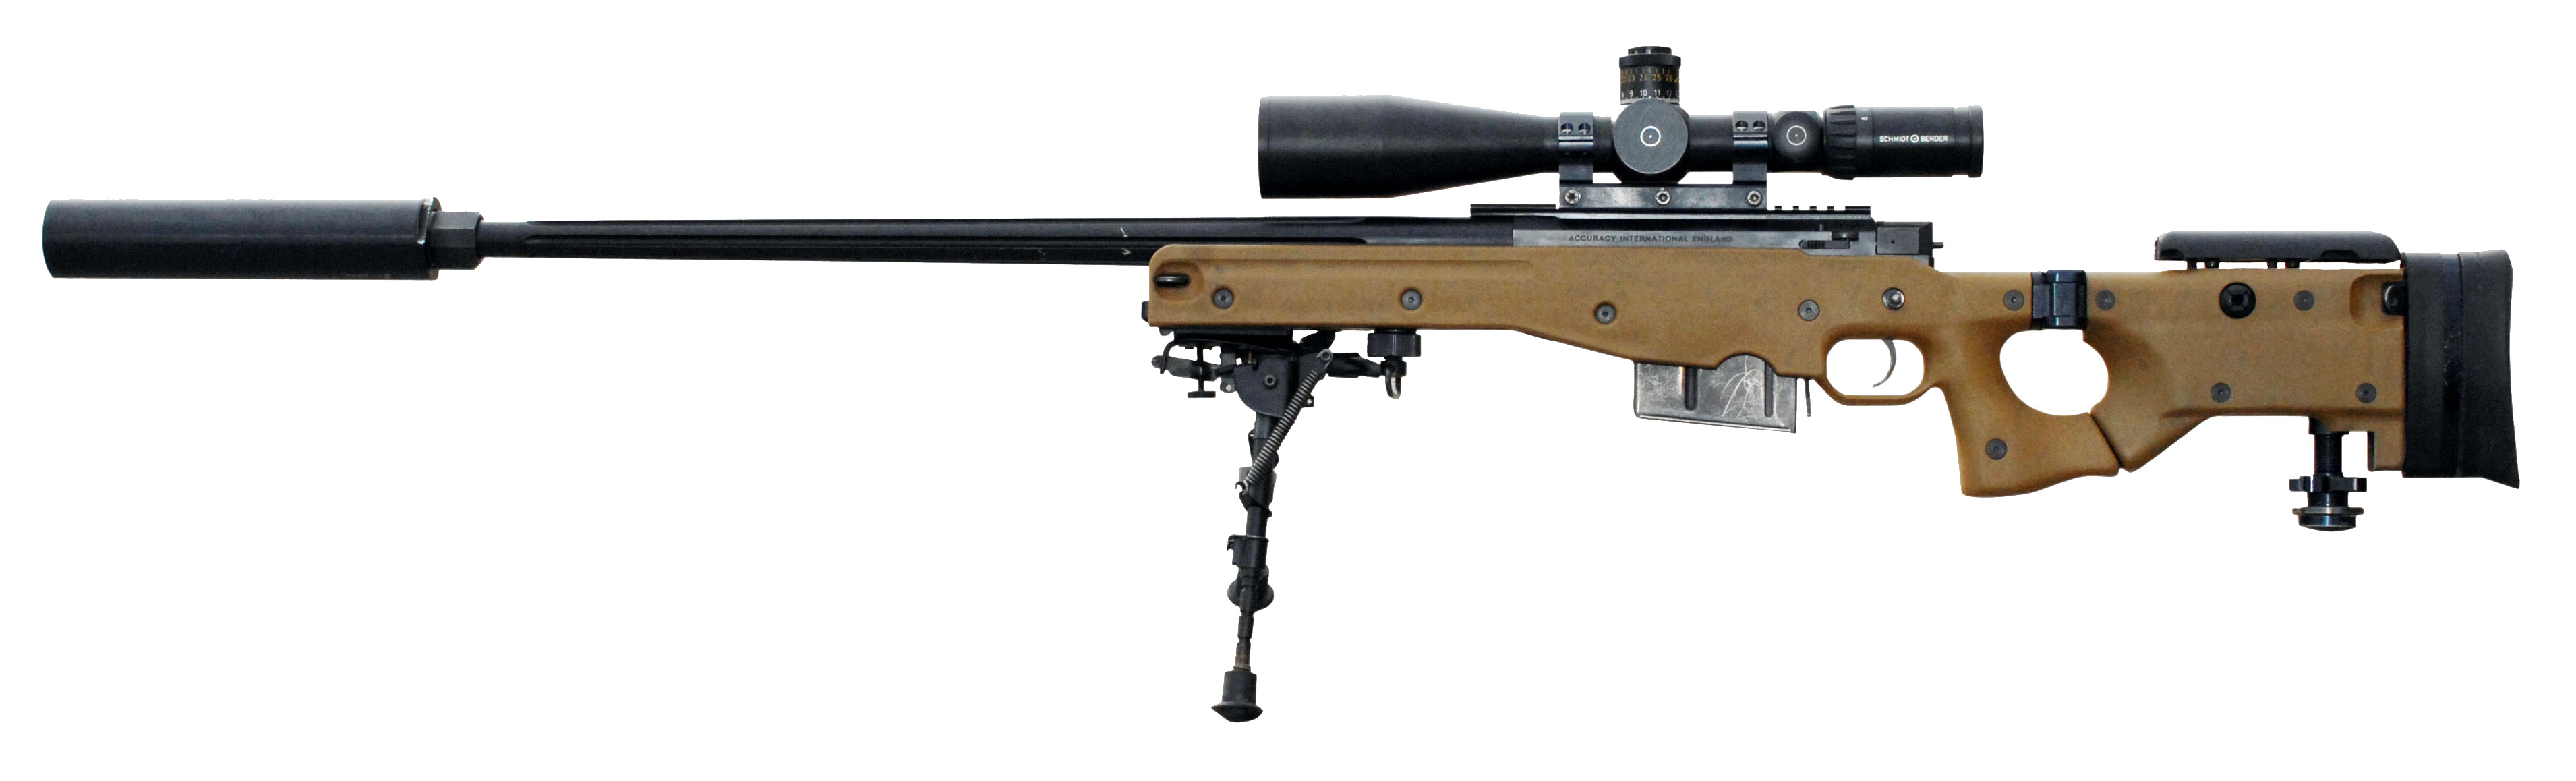 Accuracy International Aw 338 Sniper Rifle Backgrounds, Compatible - PC, Mobile, Gadgets| 3820x1158 px